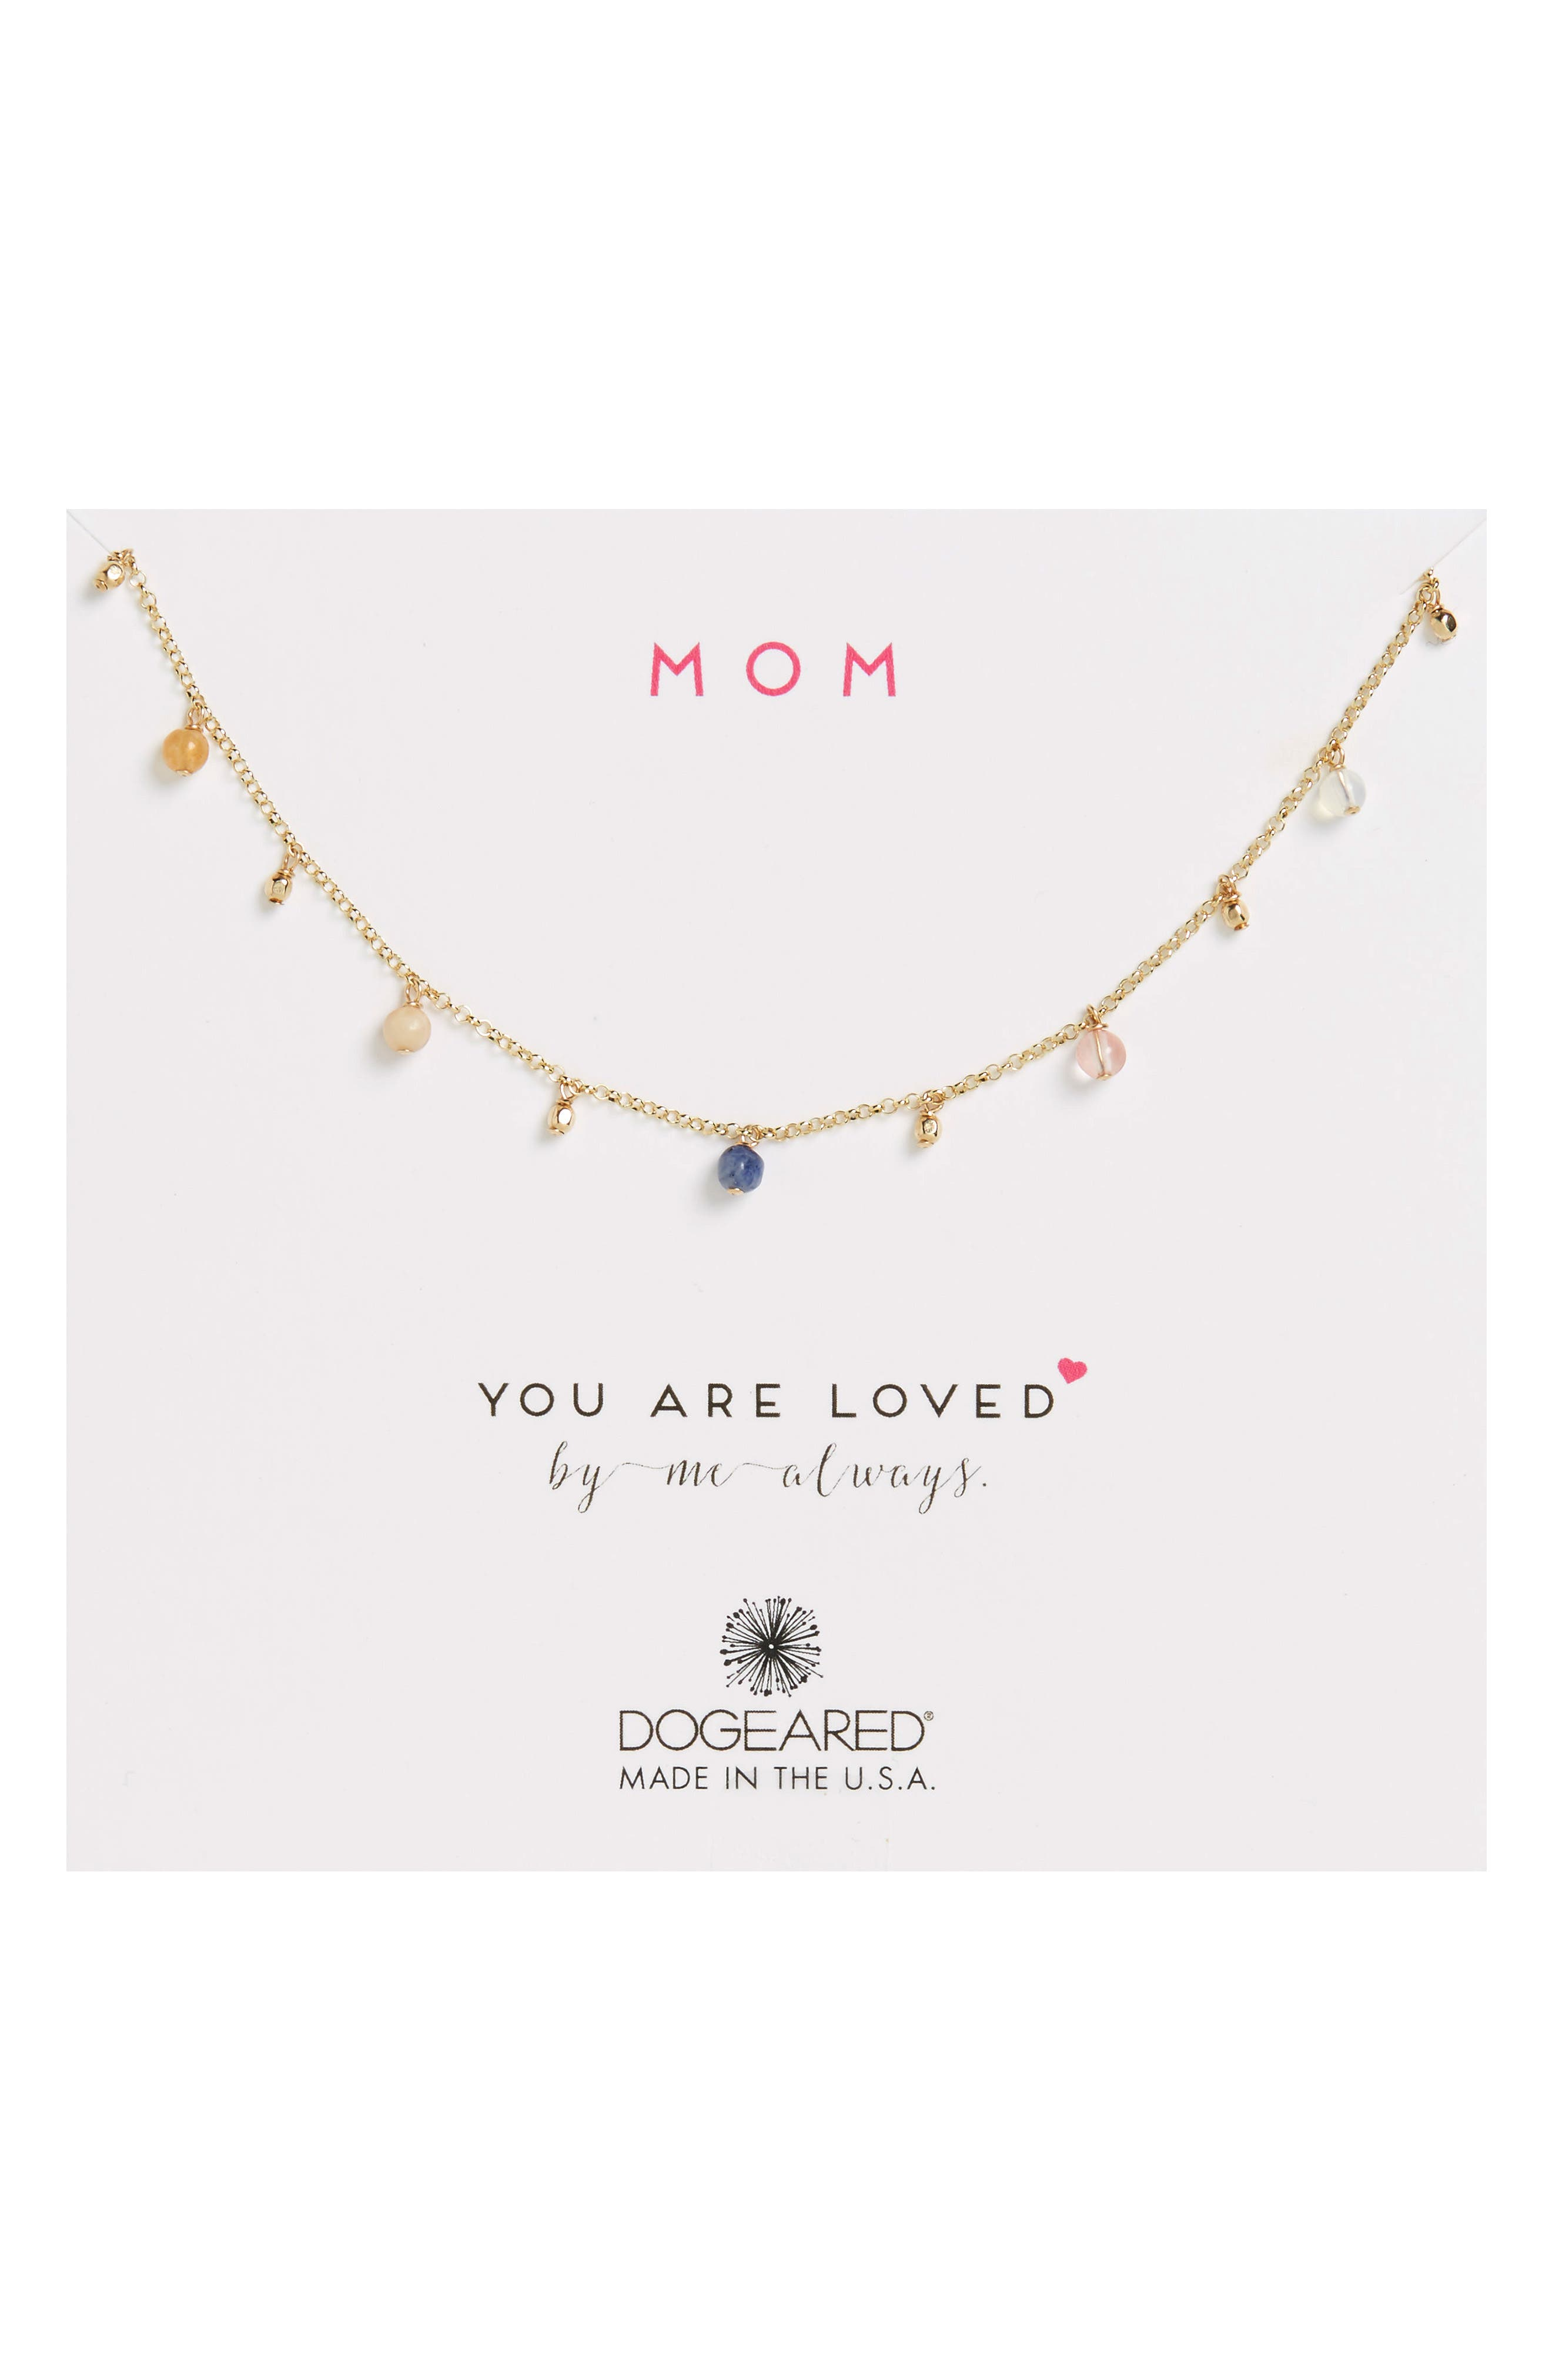 Alternate Image 1 Selected - Dogeared Mom You Are Loved Stone Bead Necklace